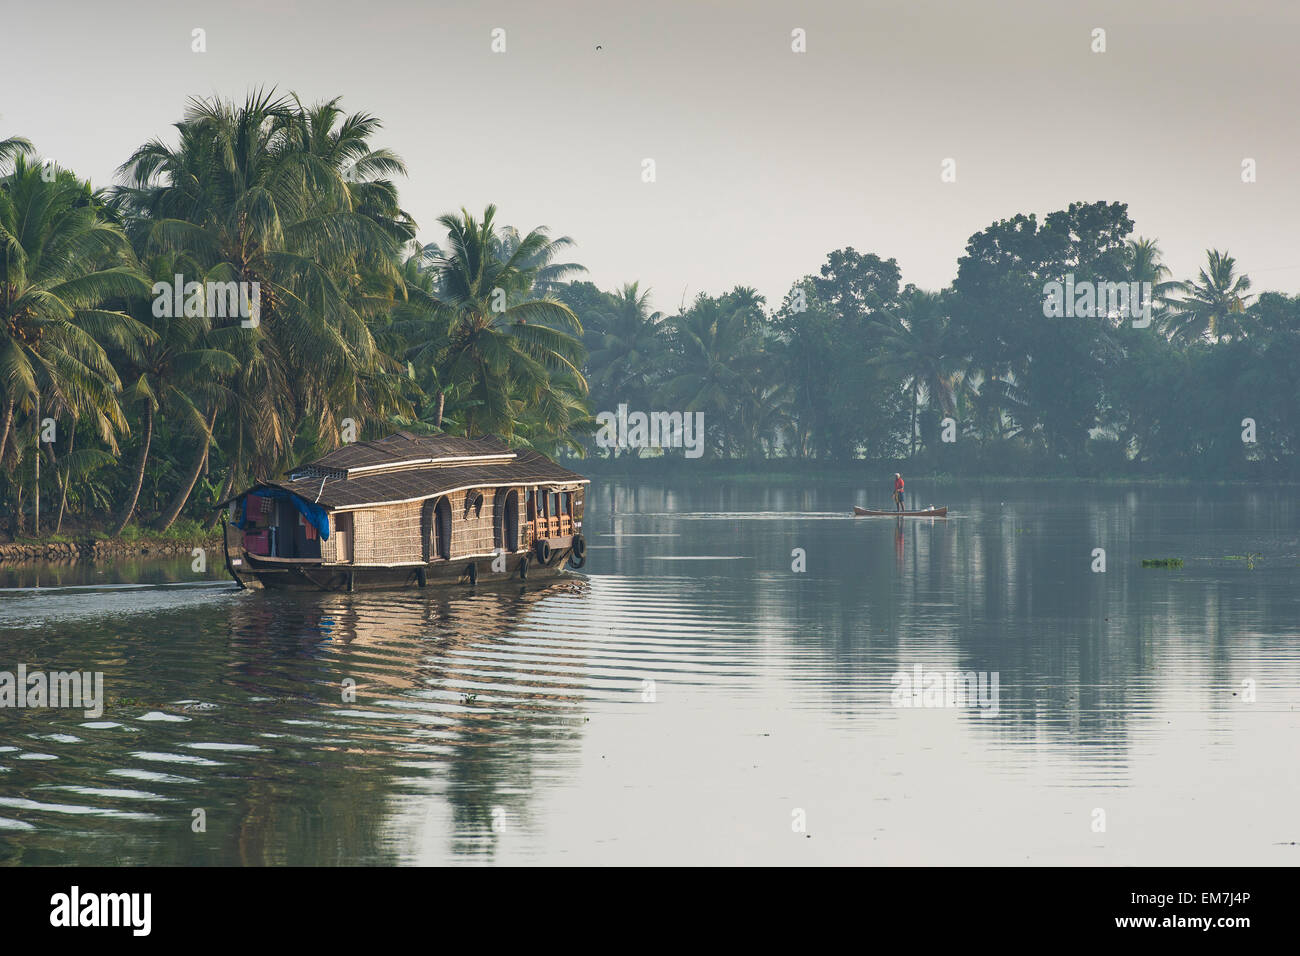 House boat, fishing, palm tree fringed, backwaters, Kerala, Malabar Coast, South India, India - Stock Image